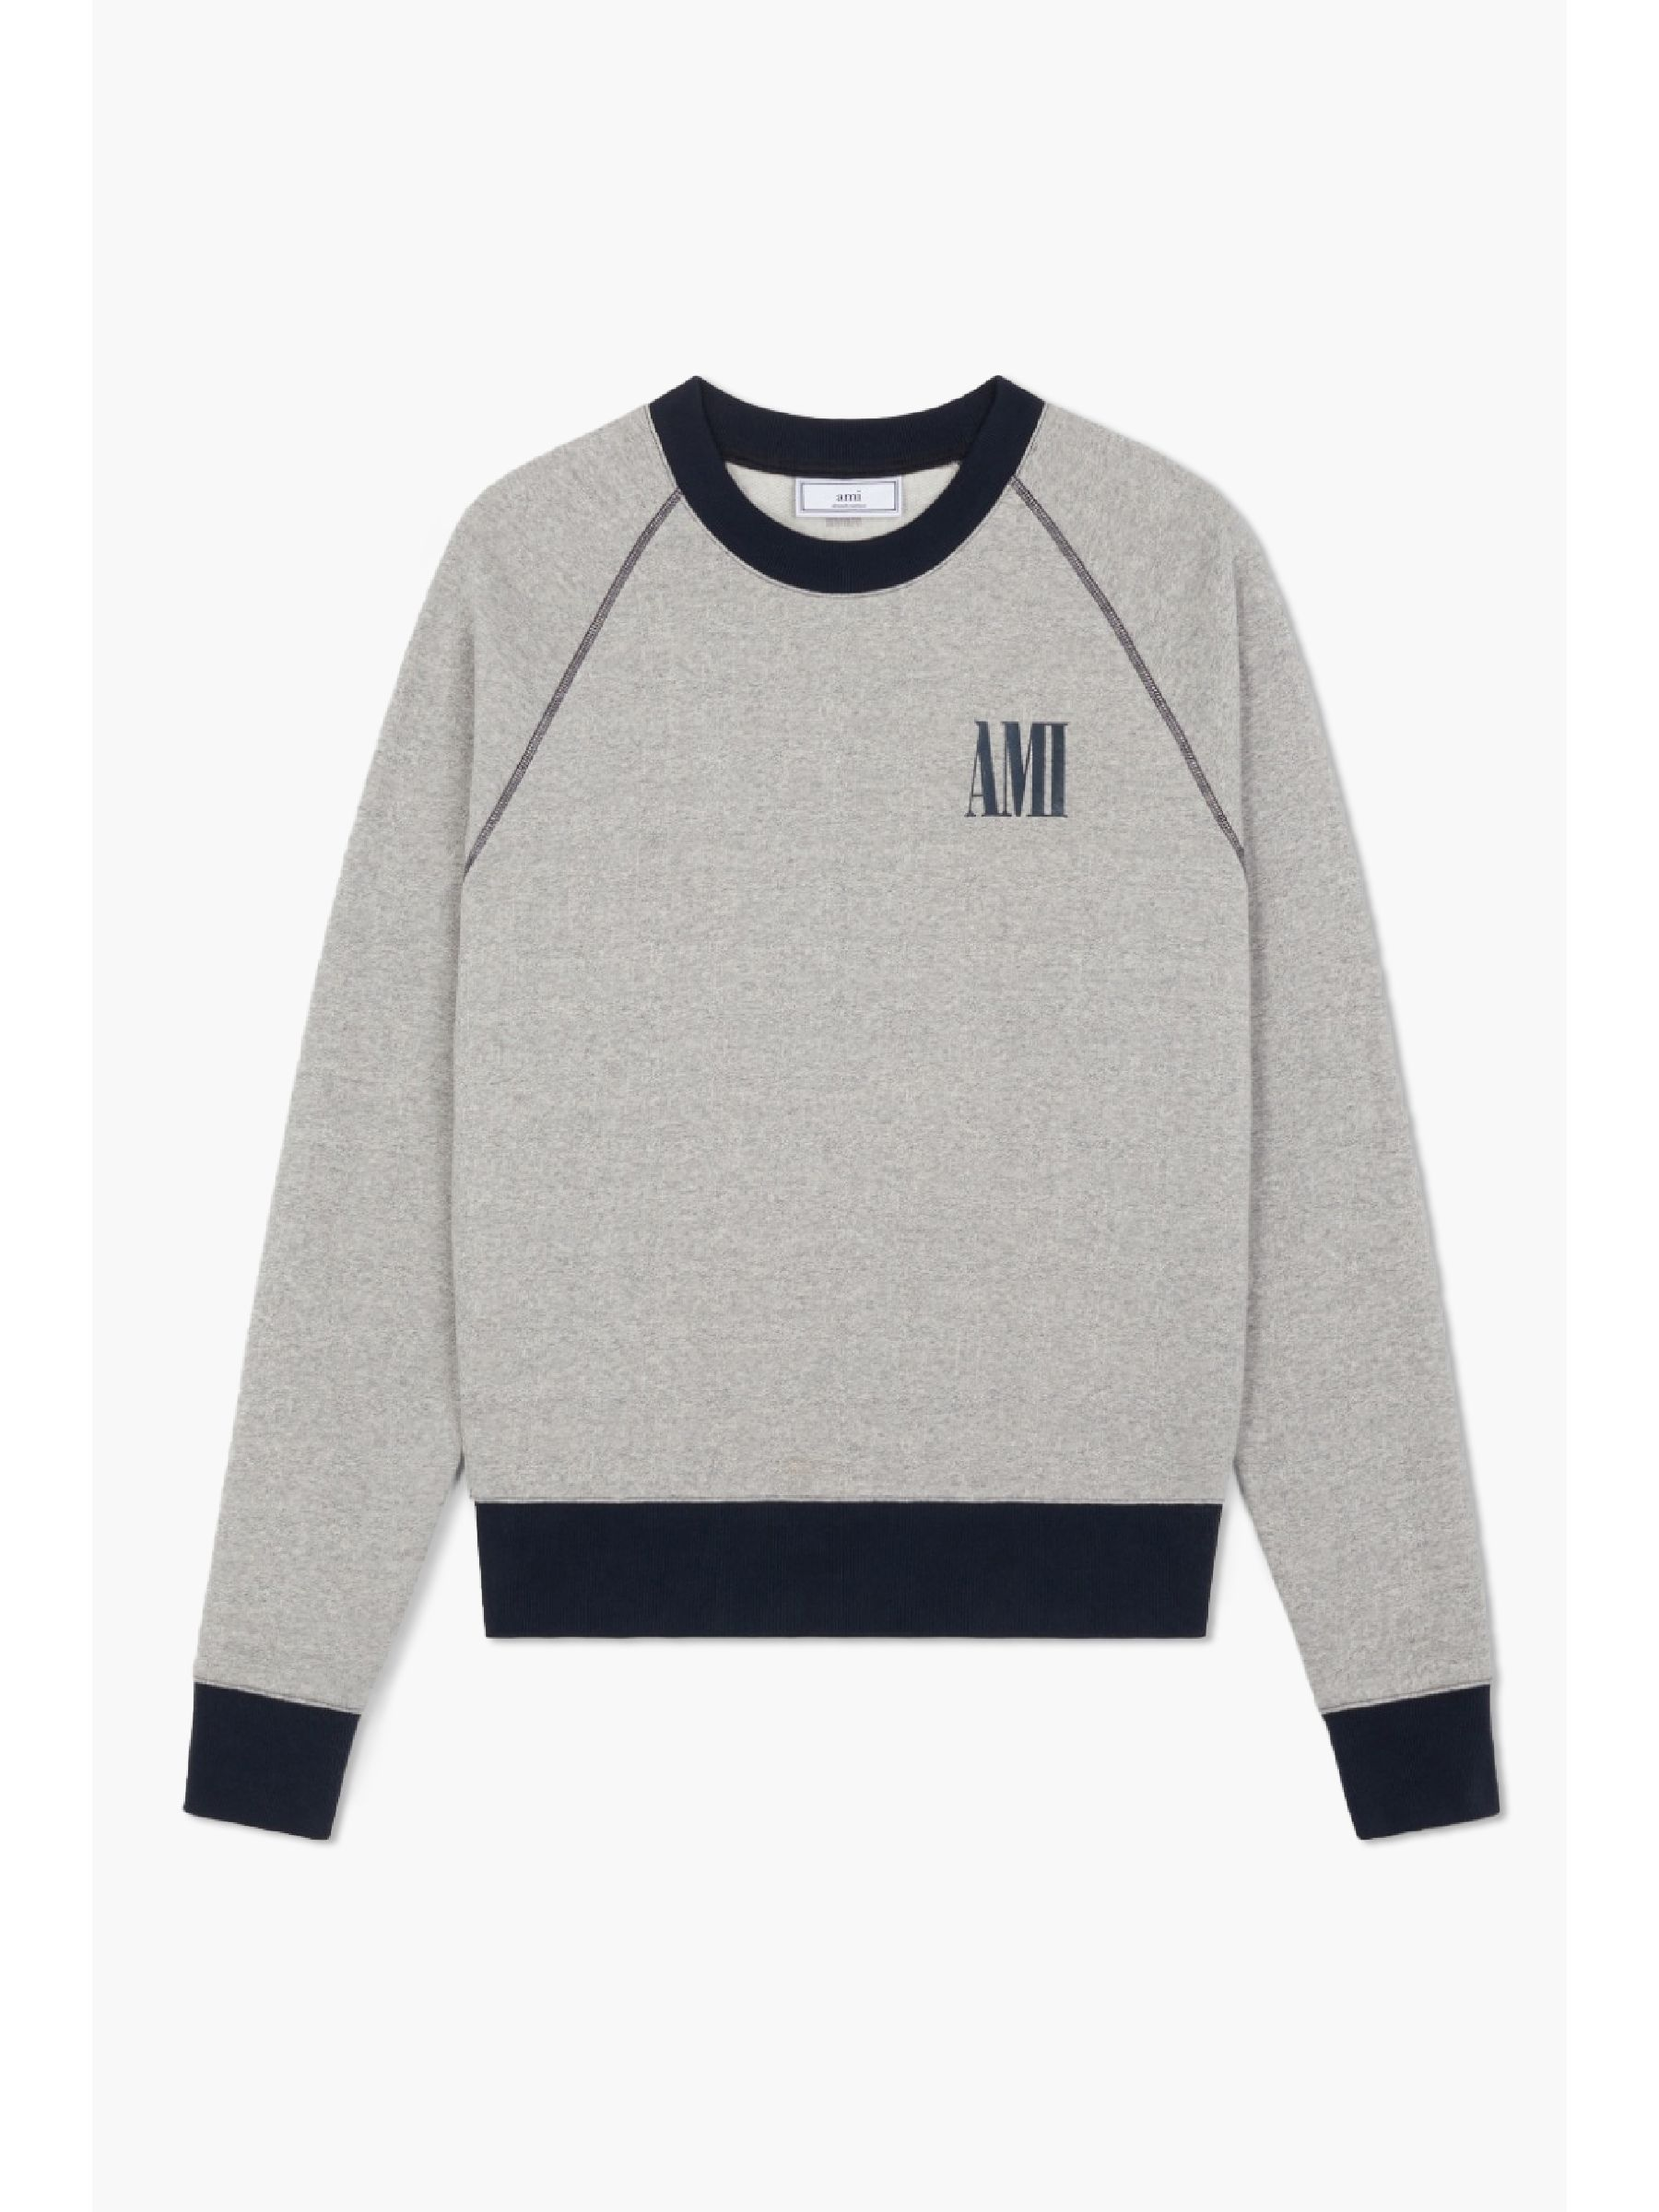 ami_paris_crewneck_bicolor_sweatshirt_with_ami_print_111437795_a.jpg